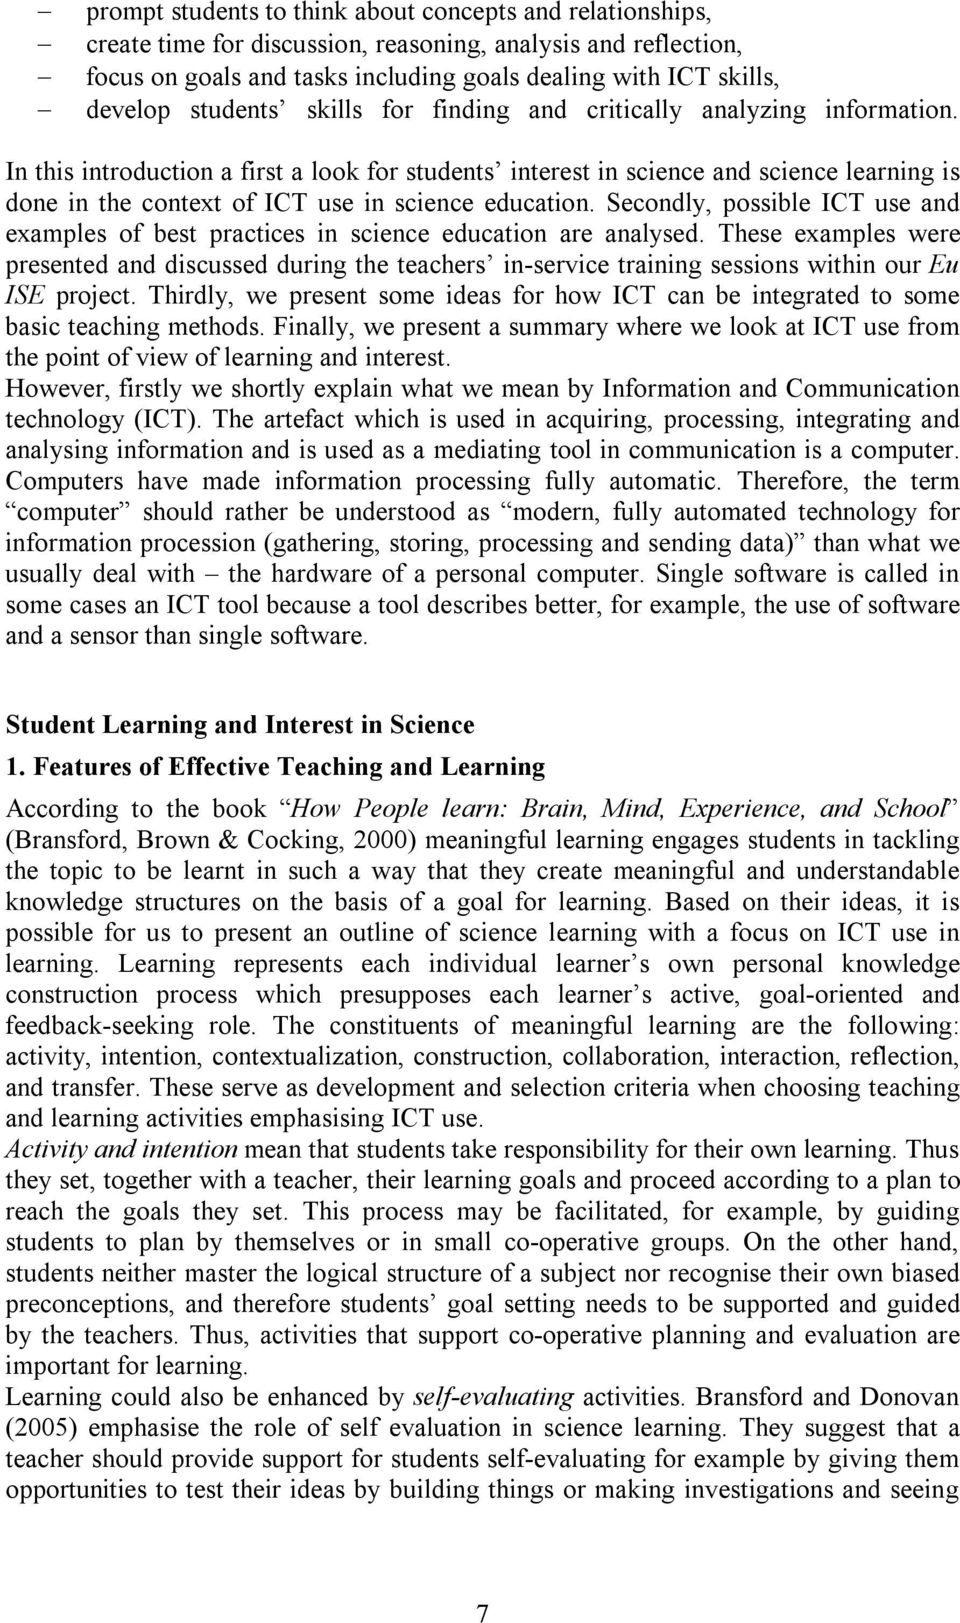 In this introduction a first a look for students interest in science and science learning is done in the context of ICT use in science education.